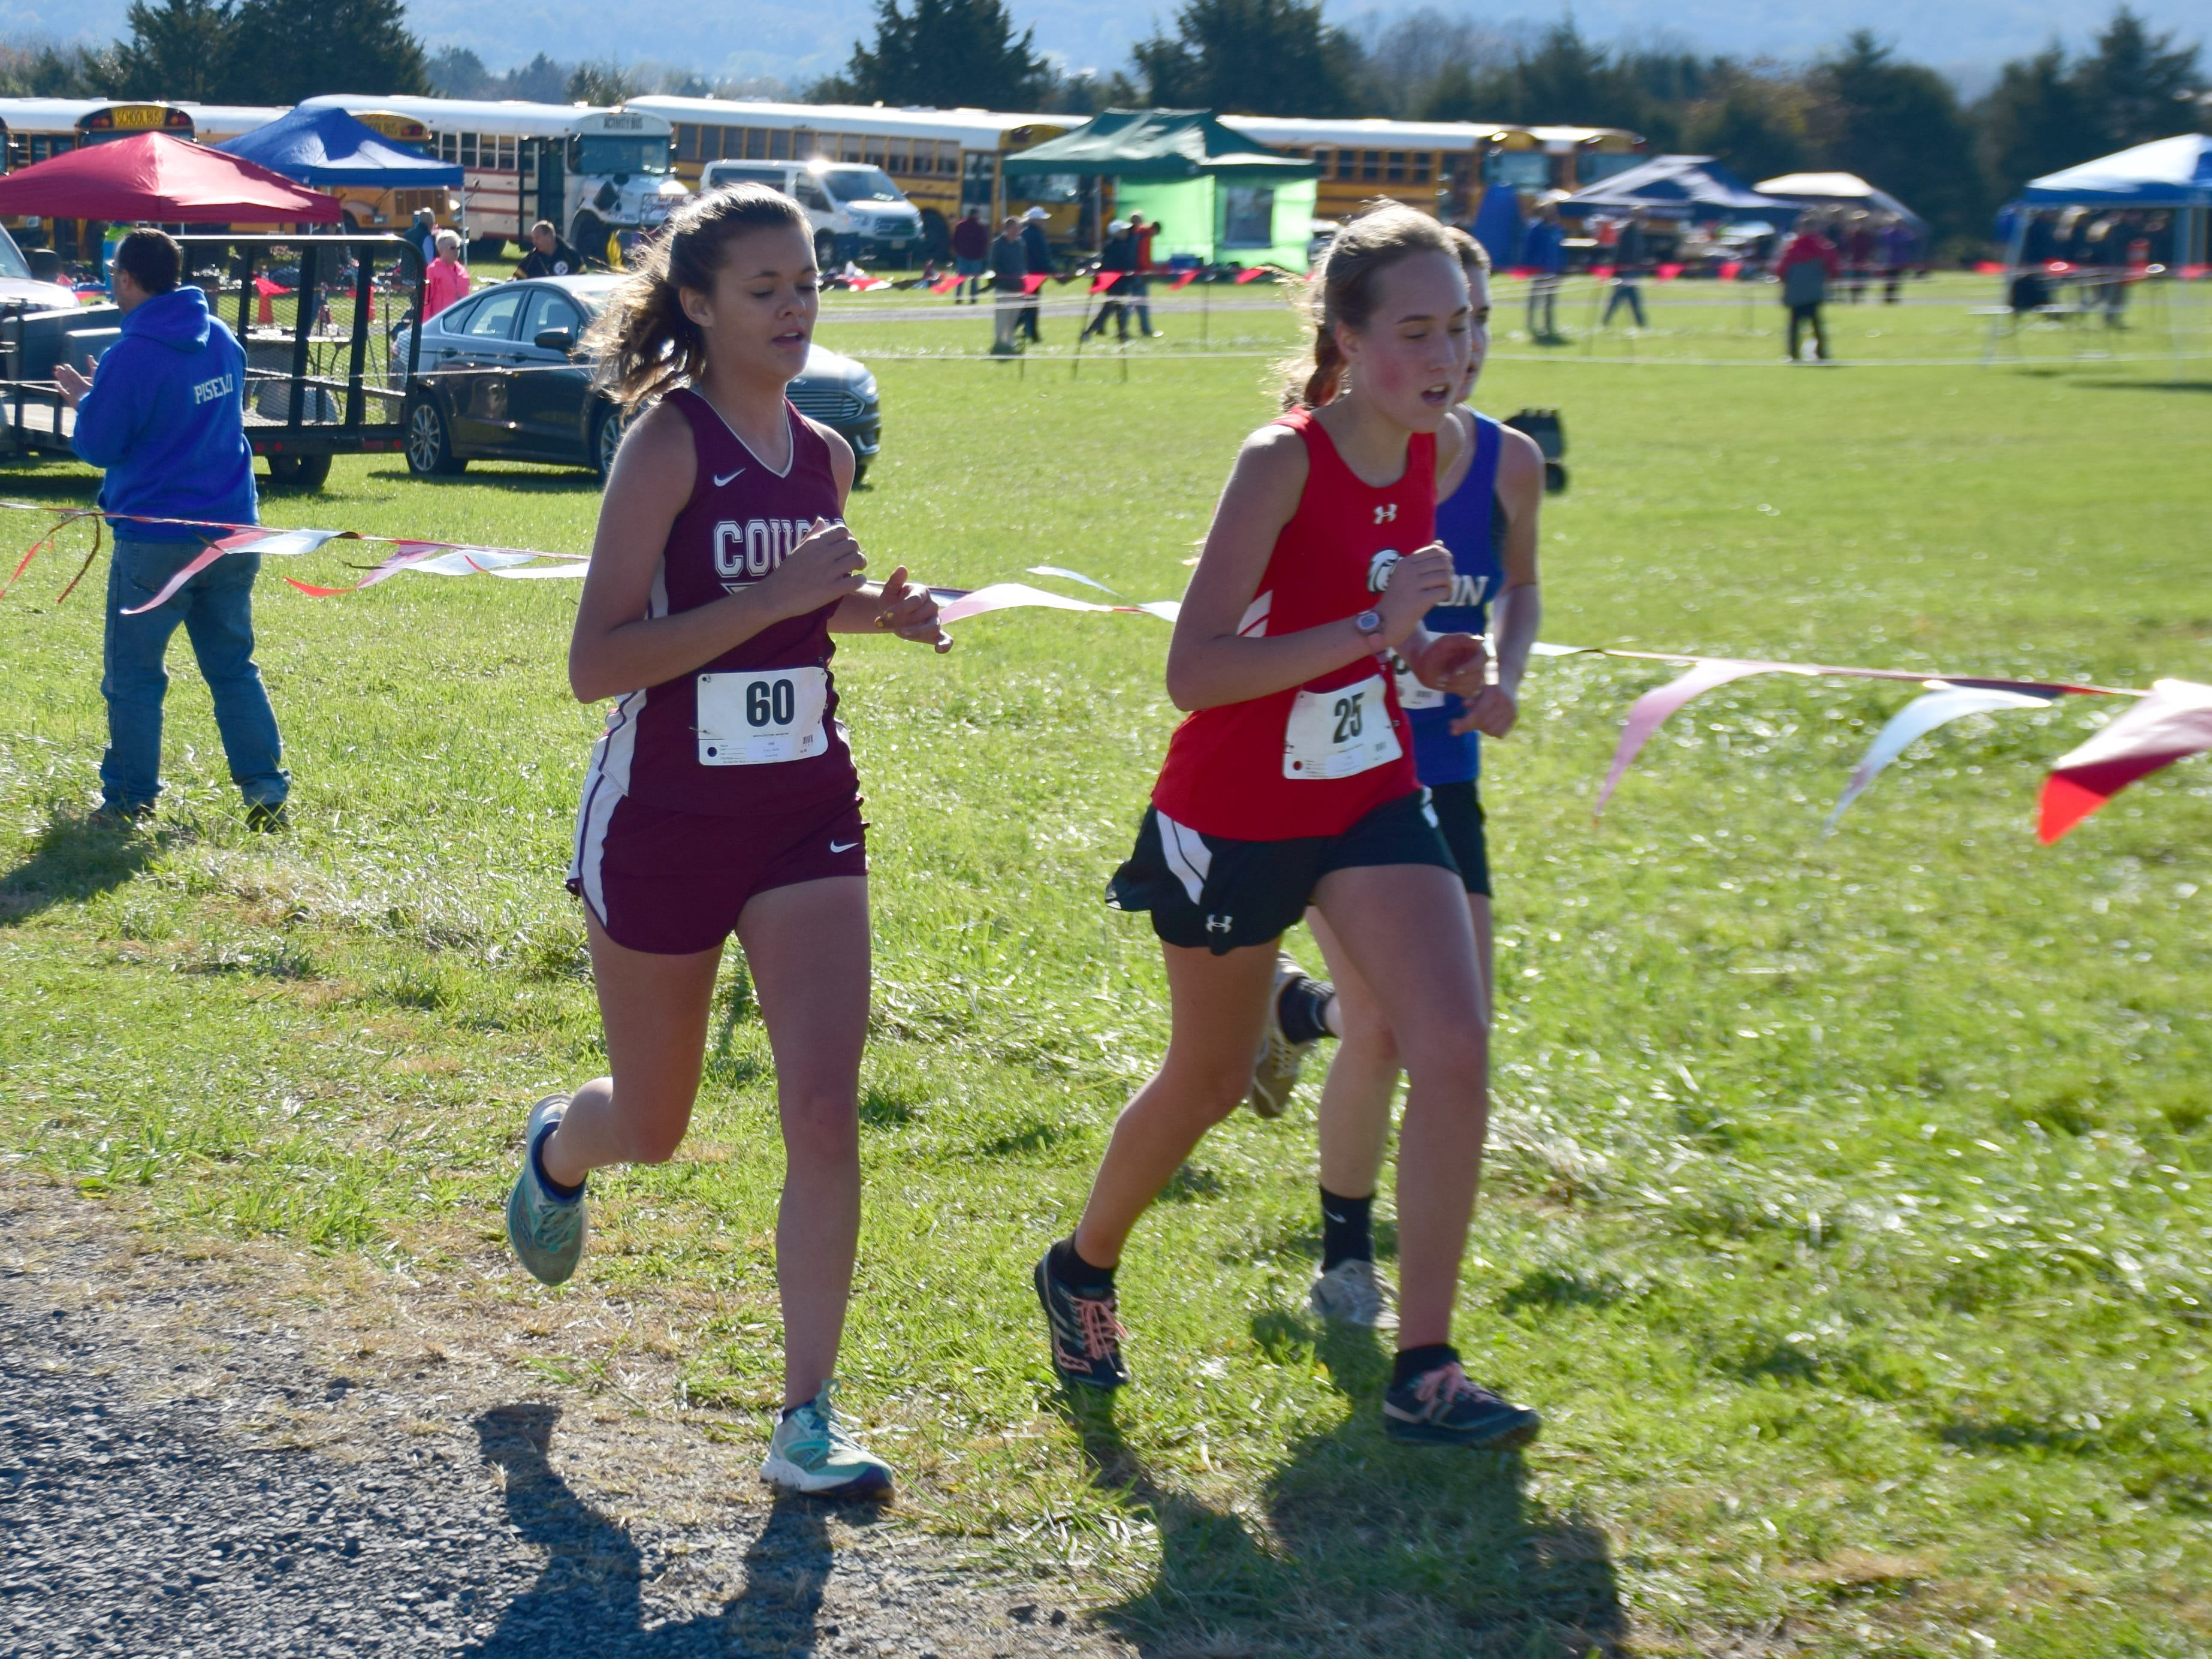 Stuarts Draft's Amelia Grenz, left, competes in the girls race at the VHSL Class 2, Region B Cross Country Championships on Tuesday, Oct. 30, 2018, at New Market Battlefield Park in New Market, Va.